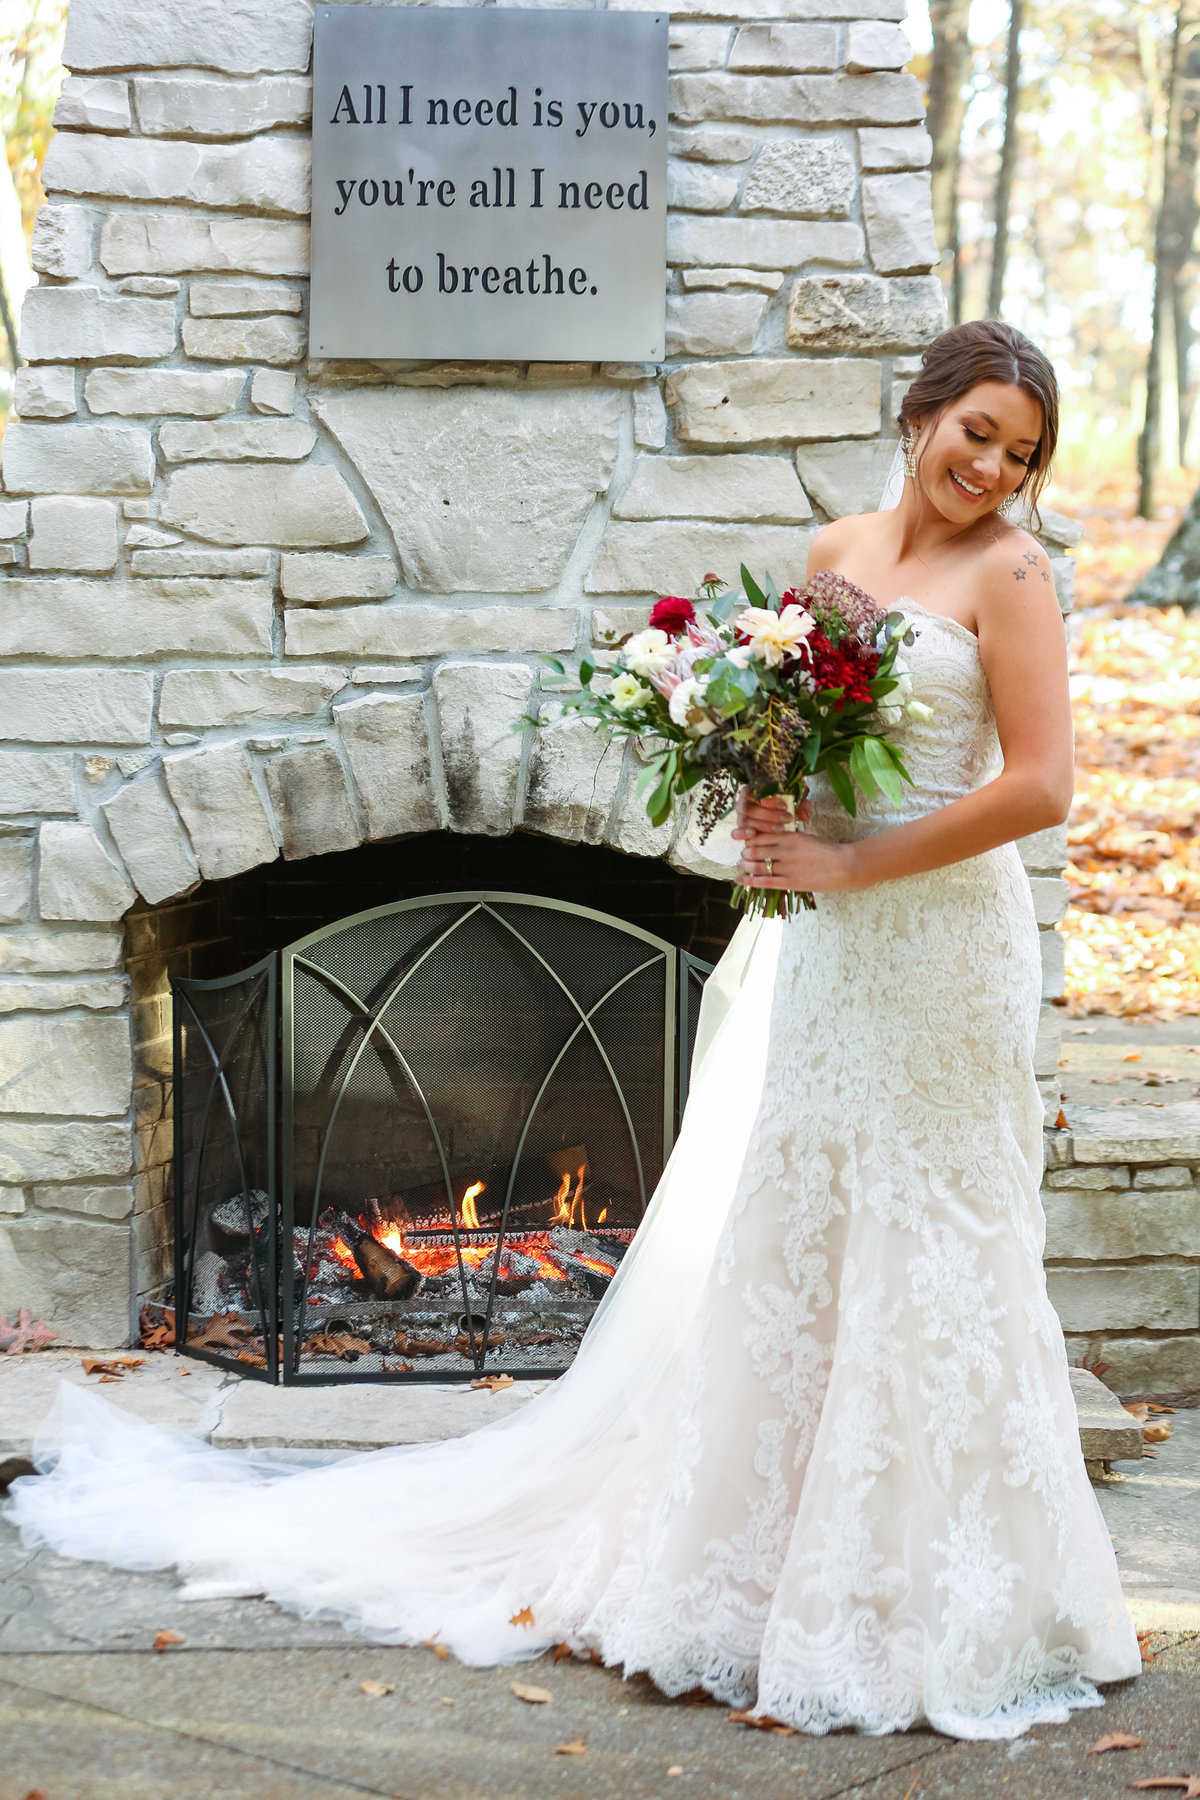 Romantic Fall Elopement  bride by fireplace at Greensfelder County Park  in St. Louis  by Amy Britton Photography Photographer in St. Louis